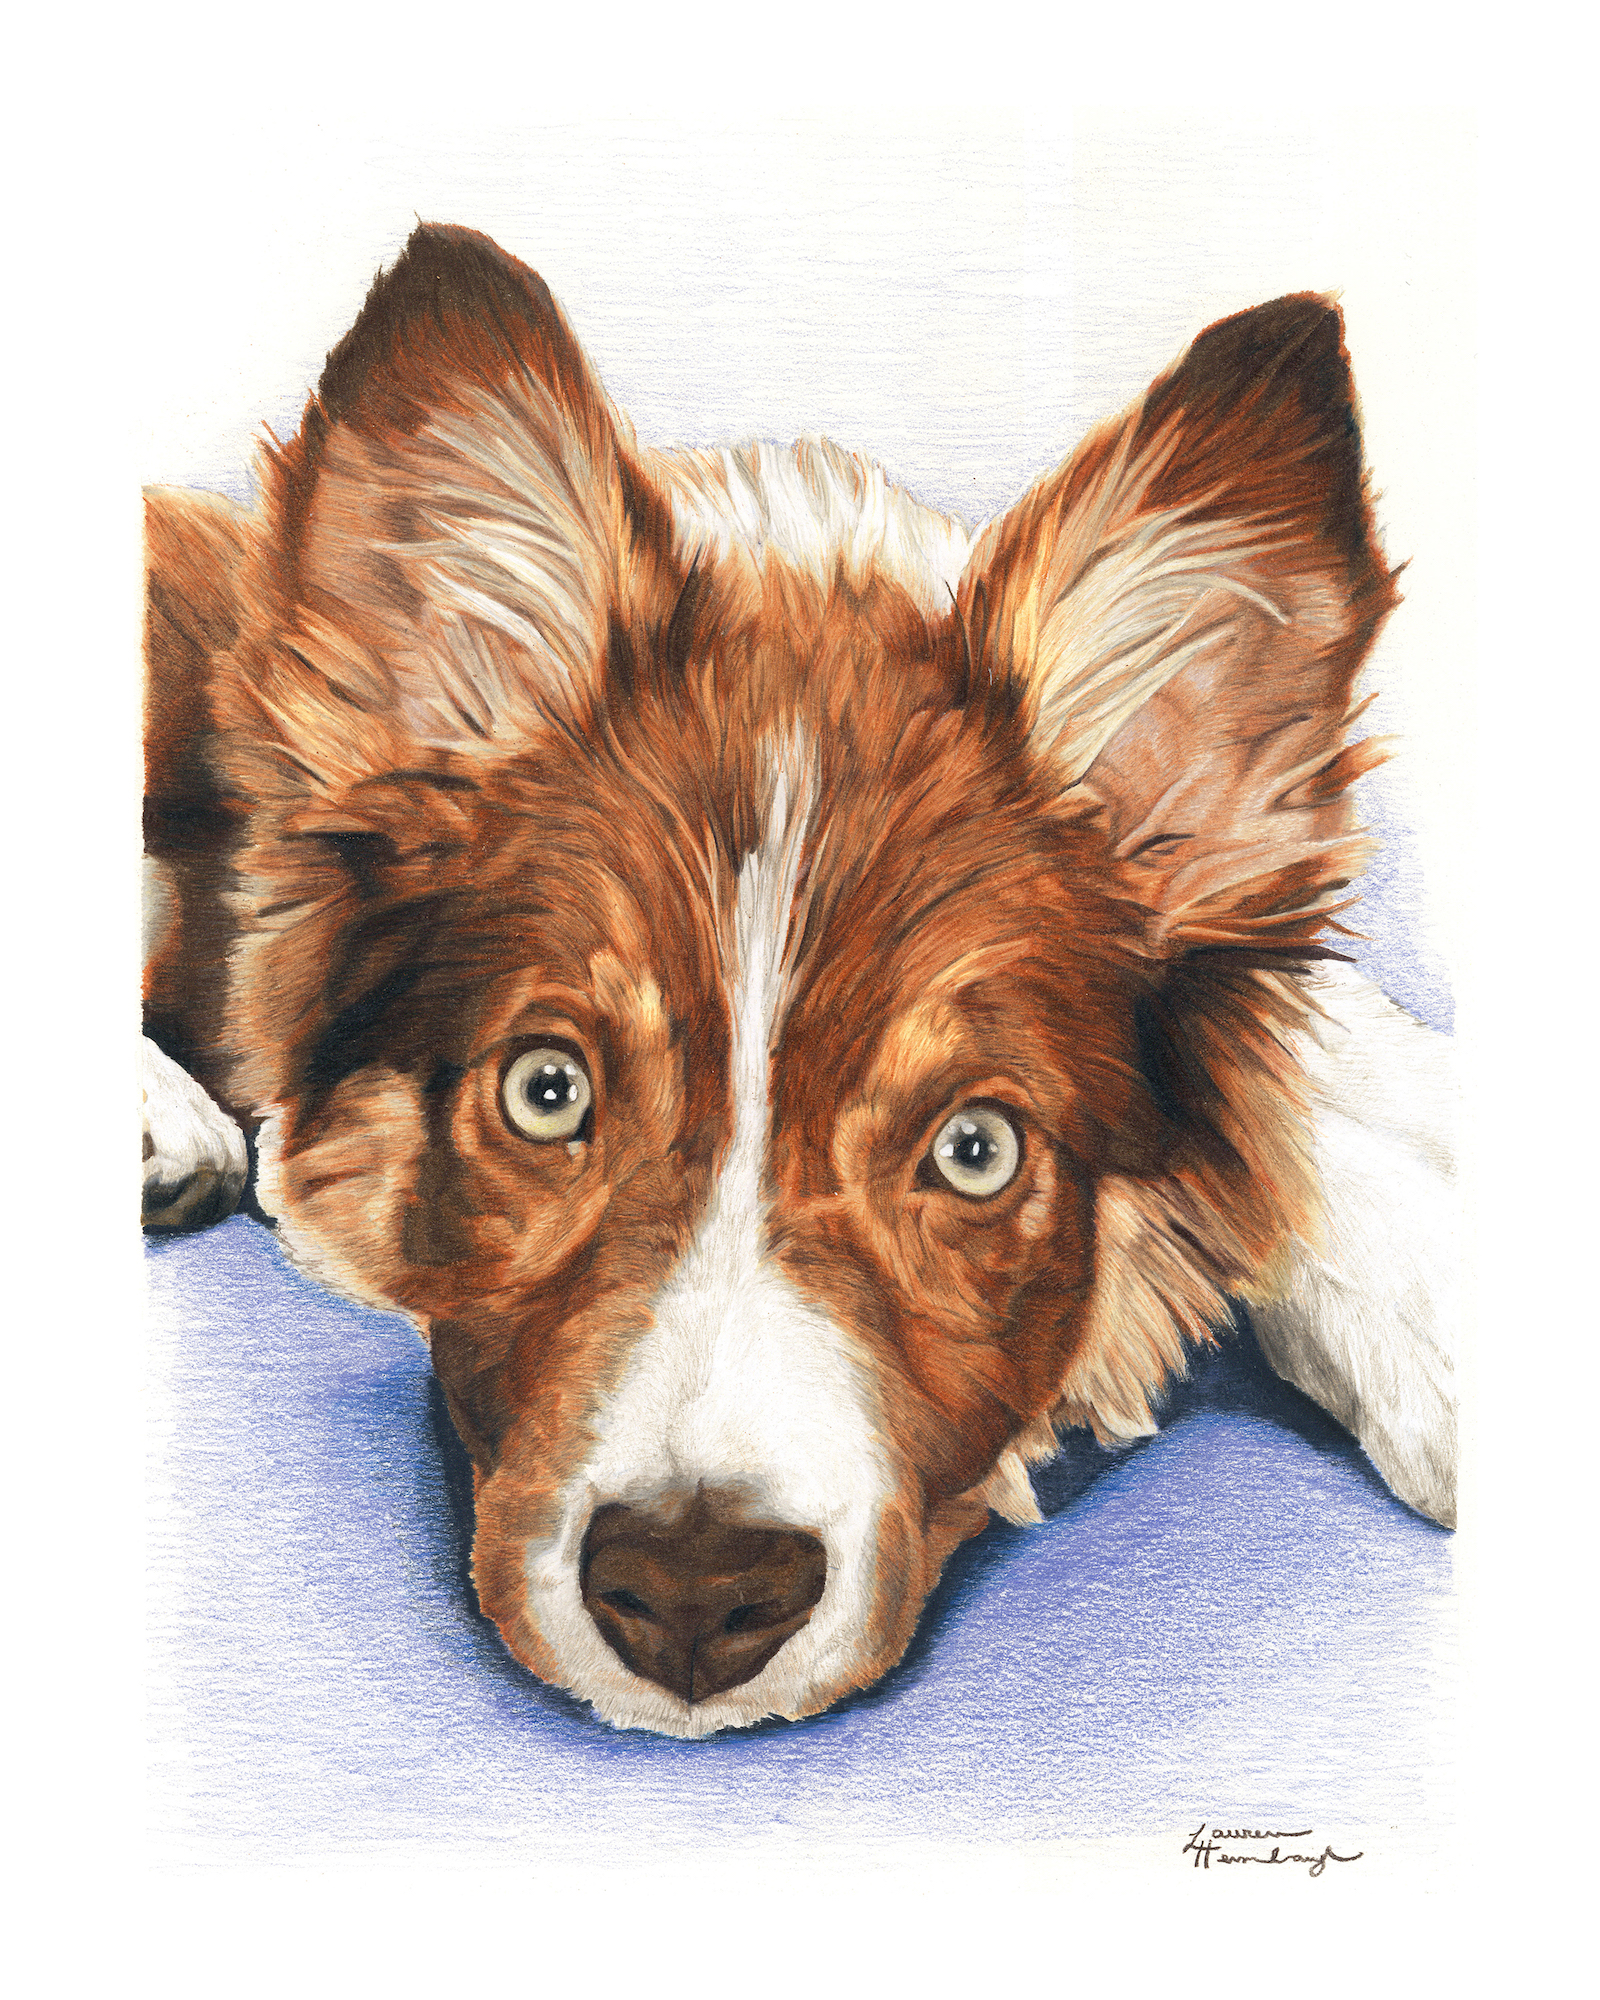 Pip the Border Collie (2015)